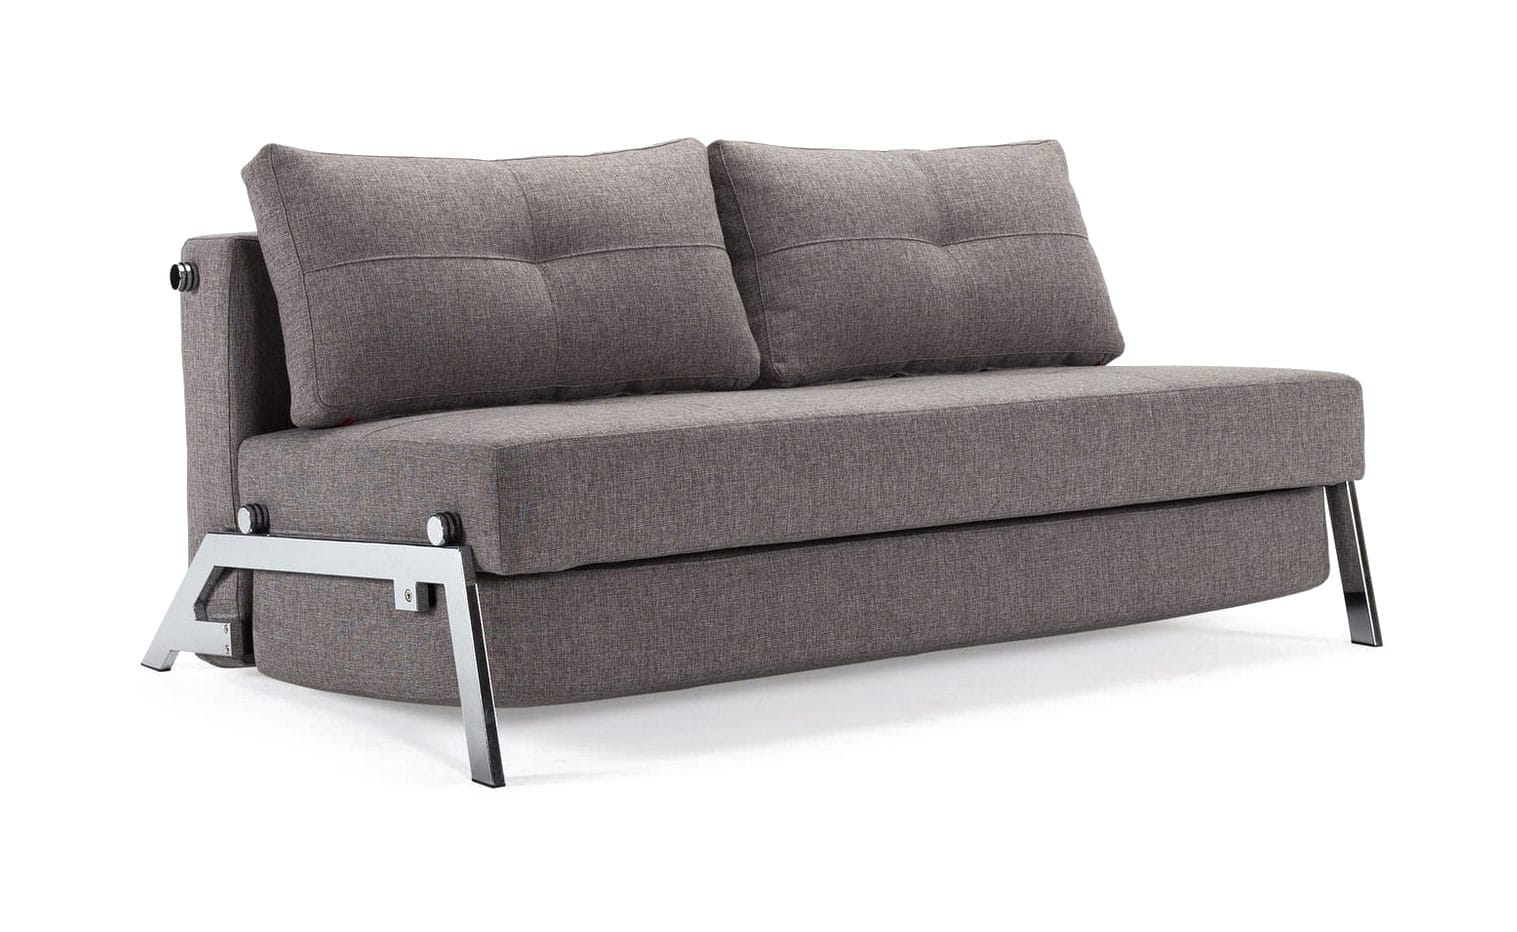 Sofa Queen Cubed 02 Deluxe Sofa Queen Size Mixed Dance Gray By Innovation